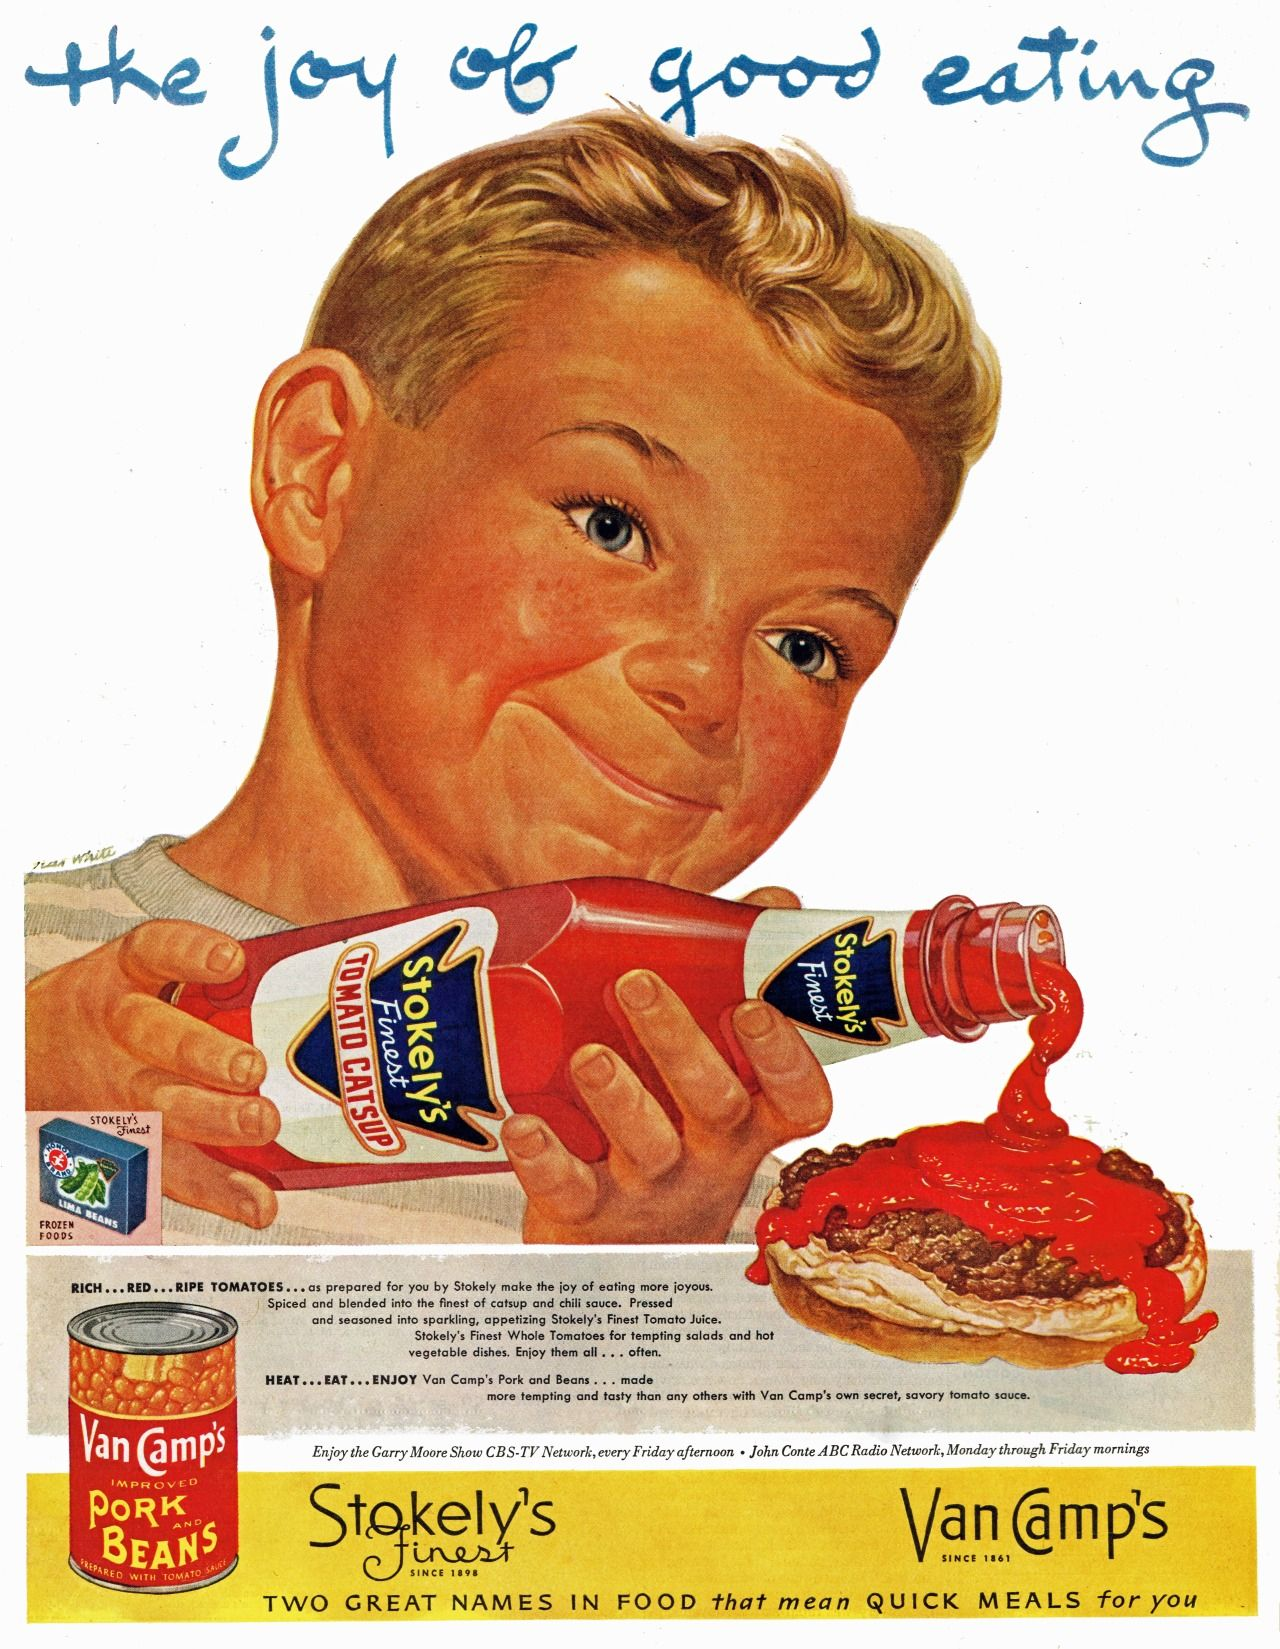 000 Stokely's Finest and Van Camp's, 1952 Retro ads, Vintage